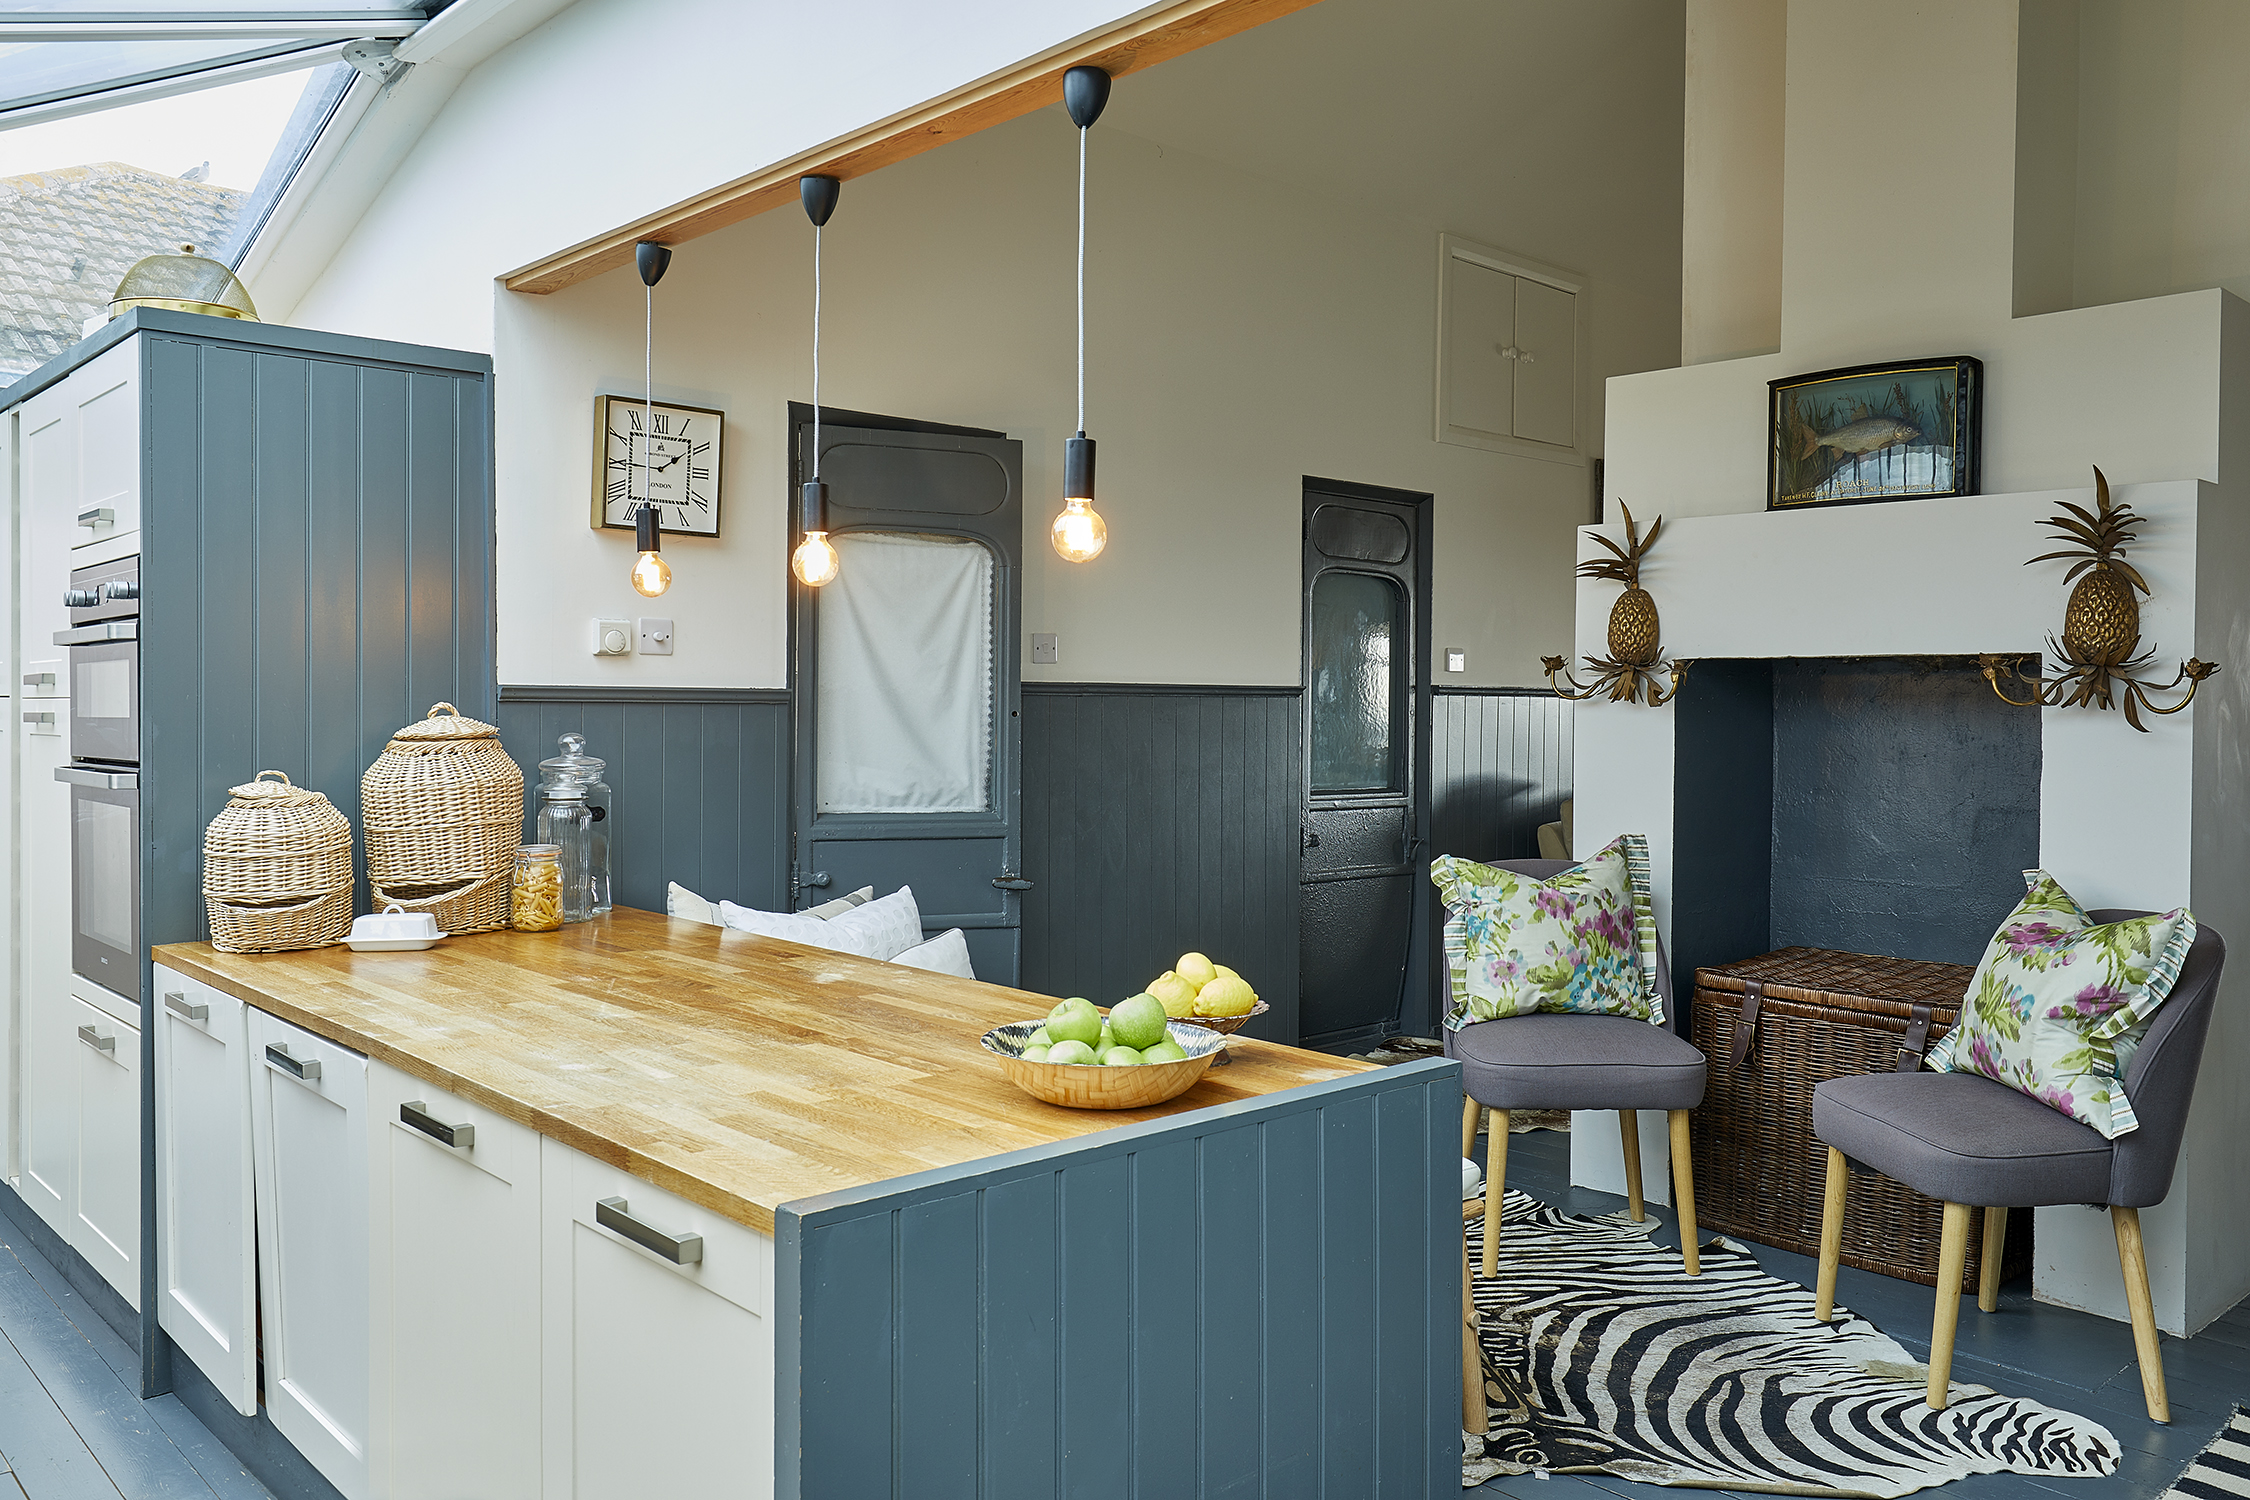 The Bolthole on Pagham Beach - Open plan kitchen with comfortable breakfast bar